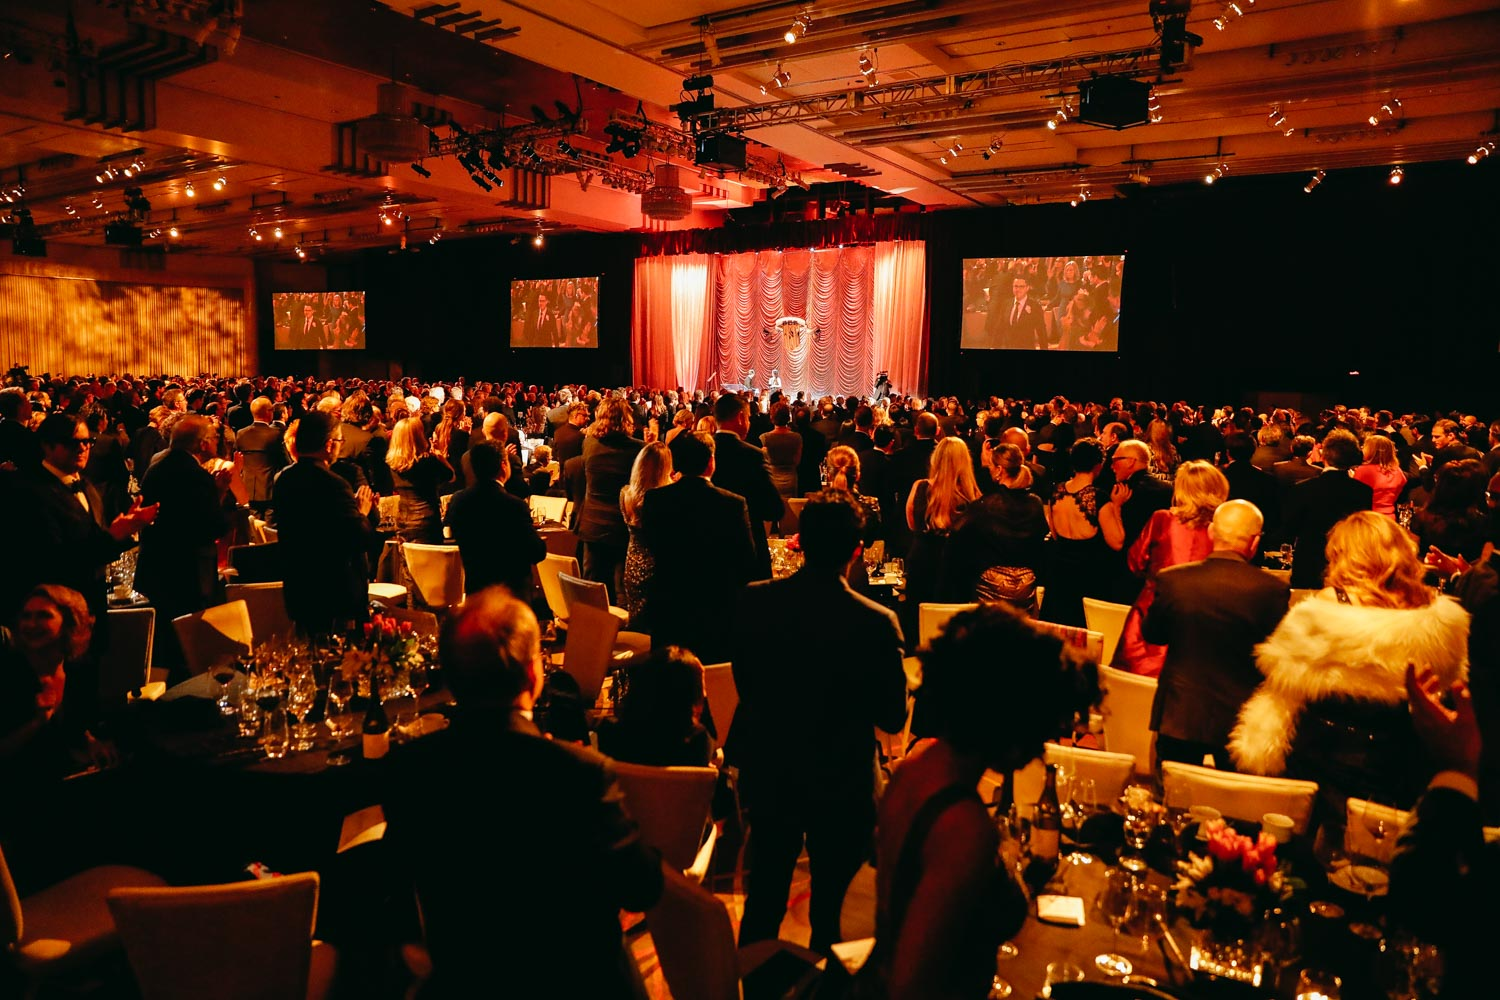 The audience arrives at the Ray Dolby Ballroom for the 31st Annual ASC Awards.